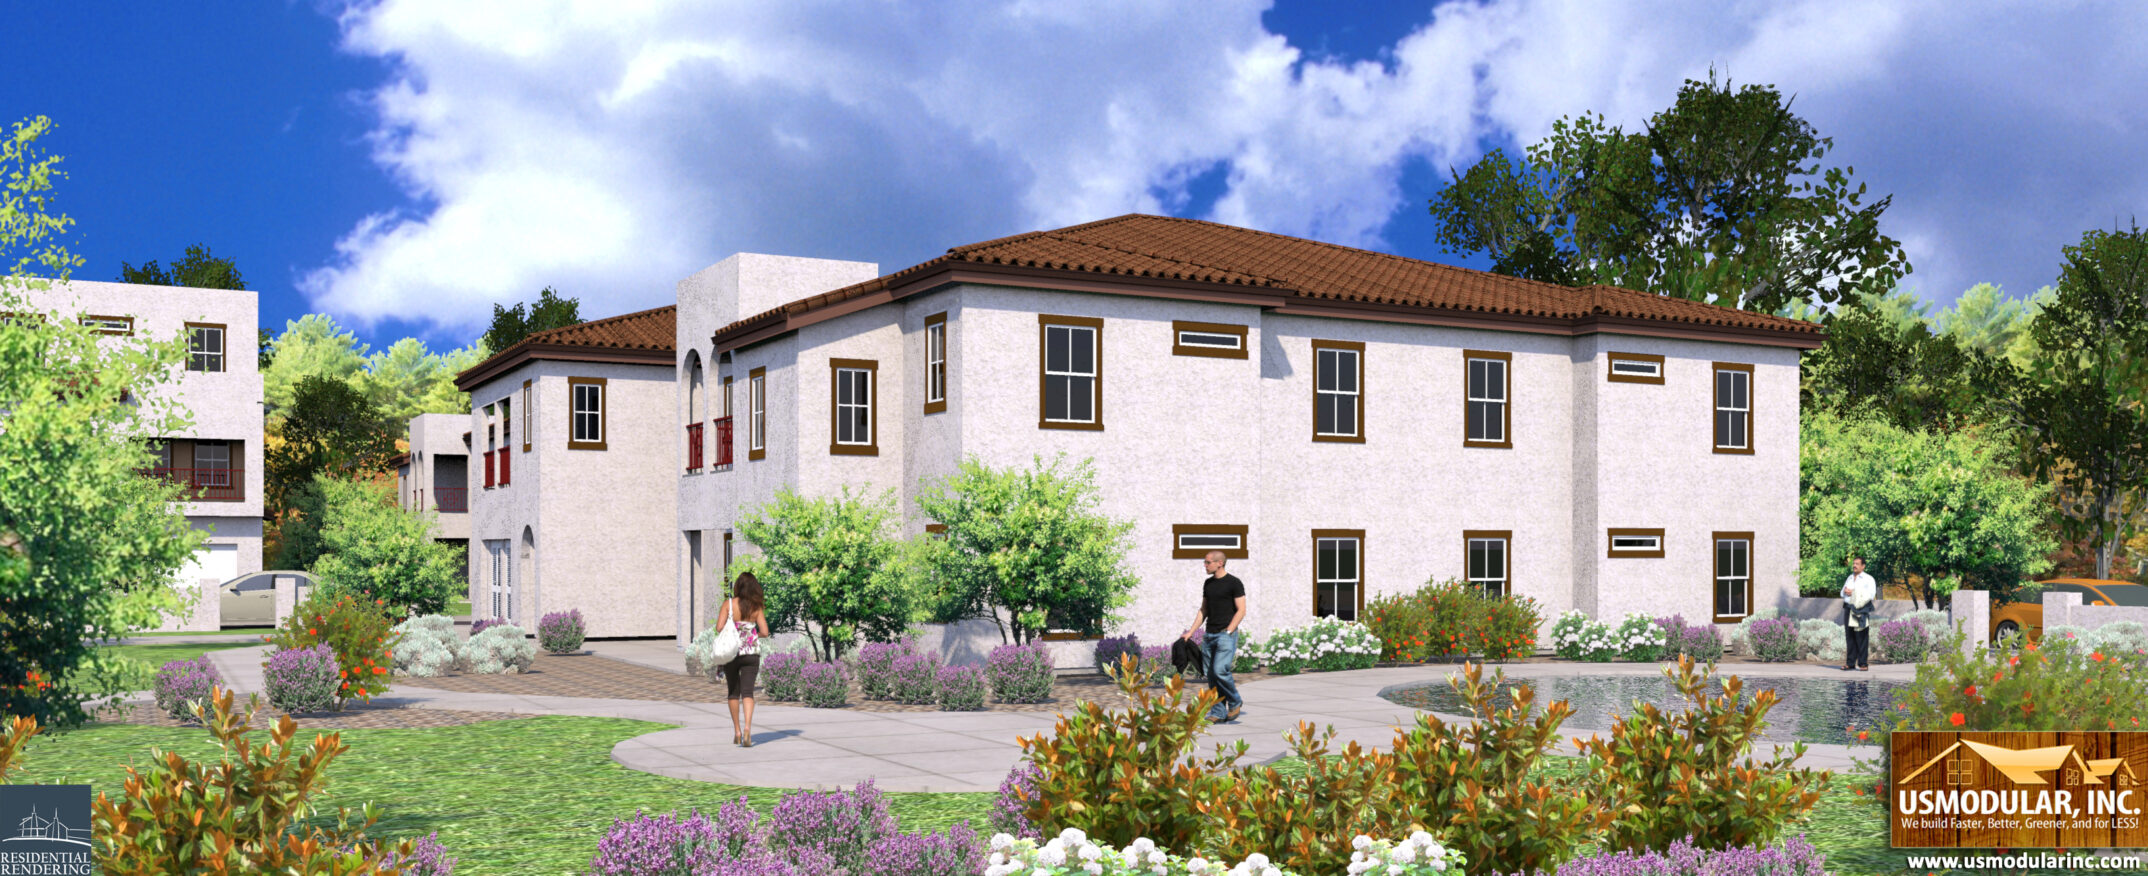 San Bernardino County Favors Modular Construction For Upcoming Affordable Senior Living Project